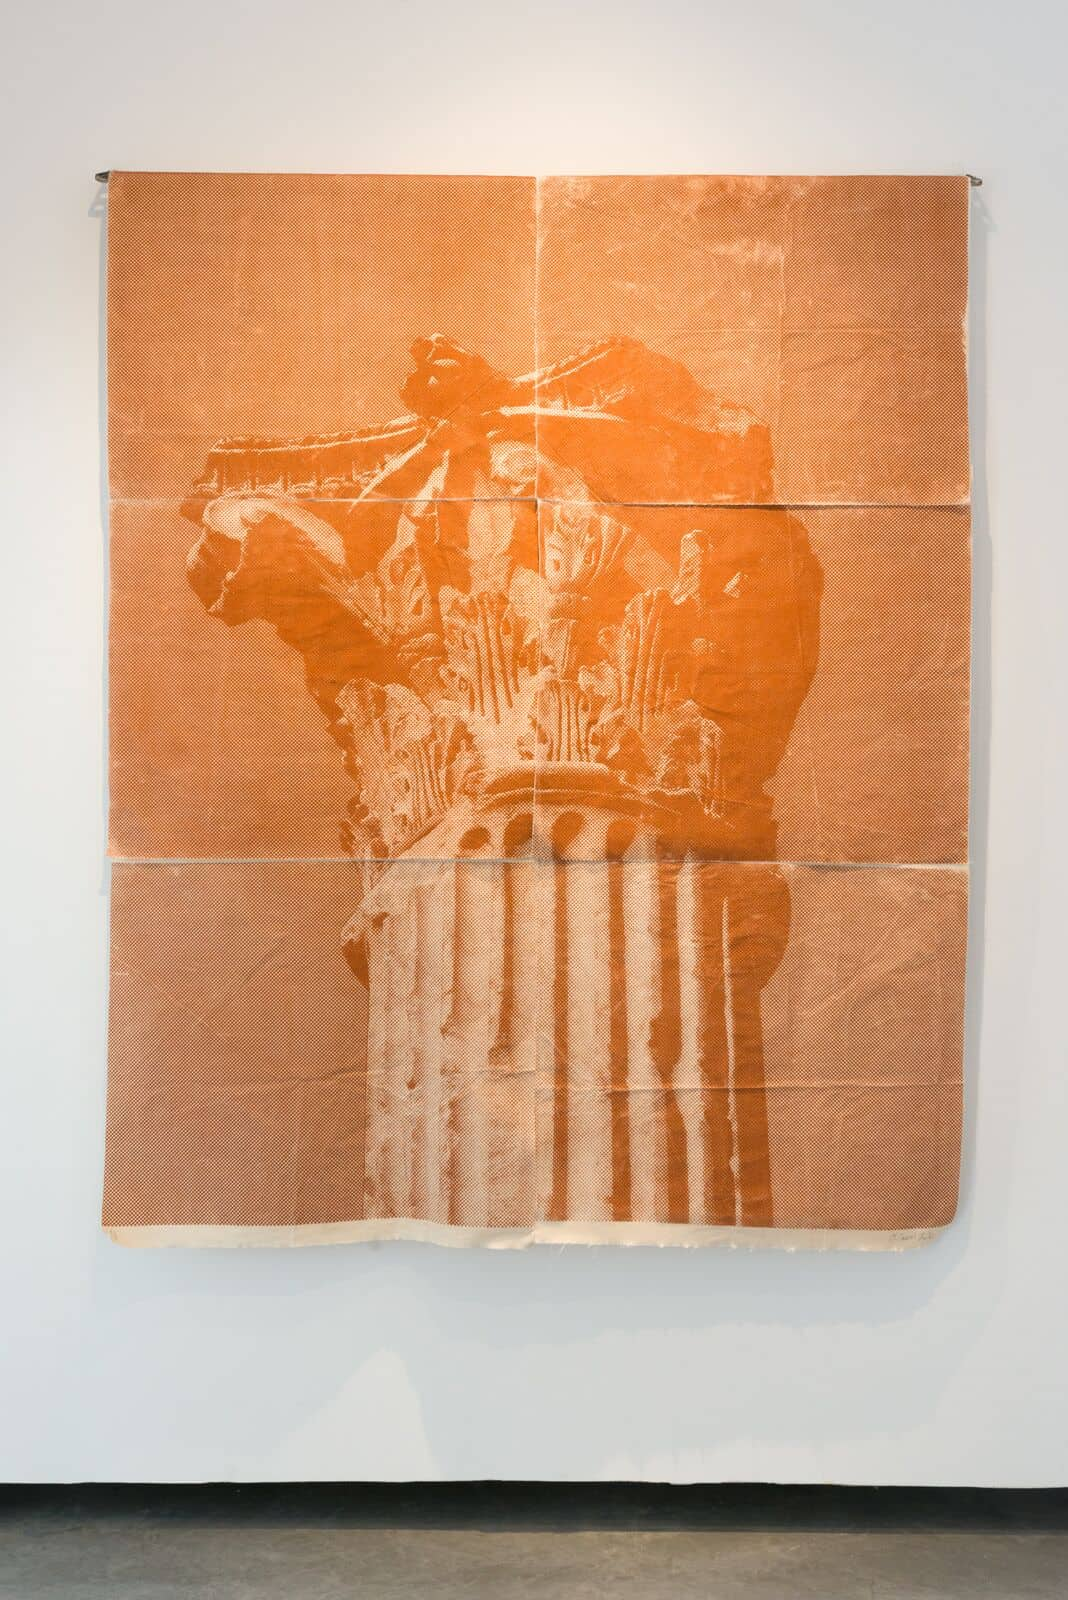 Malek Gnaoui, SC20/current red, 2020, screen-print and red brick dust on fabric. From Essaïda-Carthage series